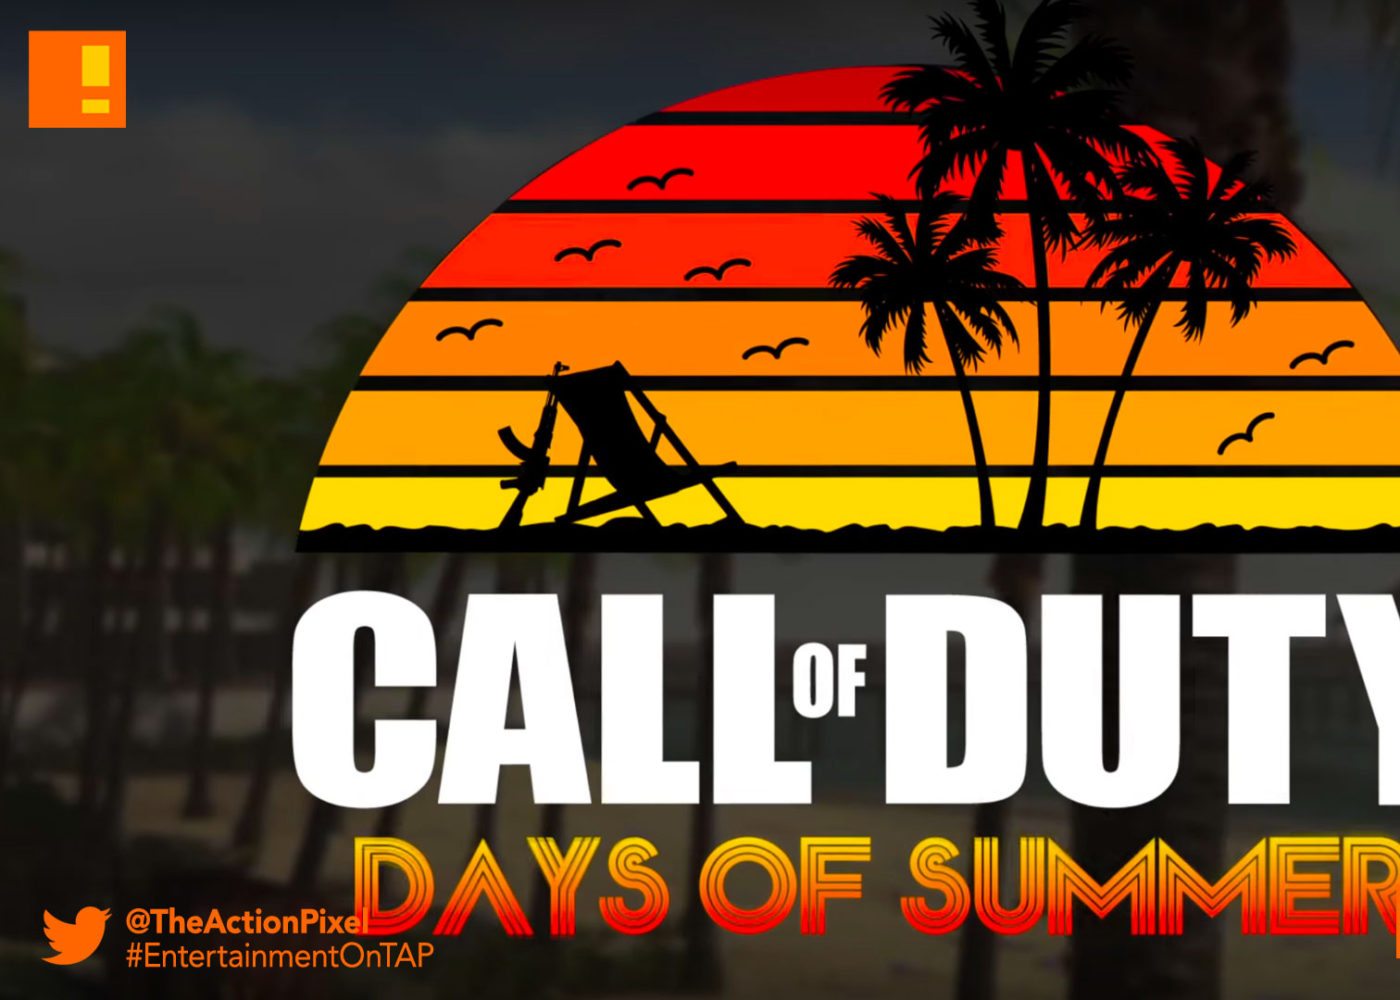 call of duty days of summer, infinity ward, infinite warfare,Call of Duty: Infinite Warfare ,Call of Duty: Modern Warfare Remastered, Call of Duty: Black Ops III, the action pixel, entertainment on tap, trailer, days of summer,